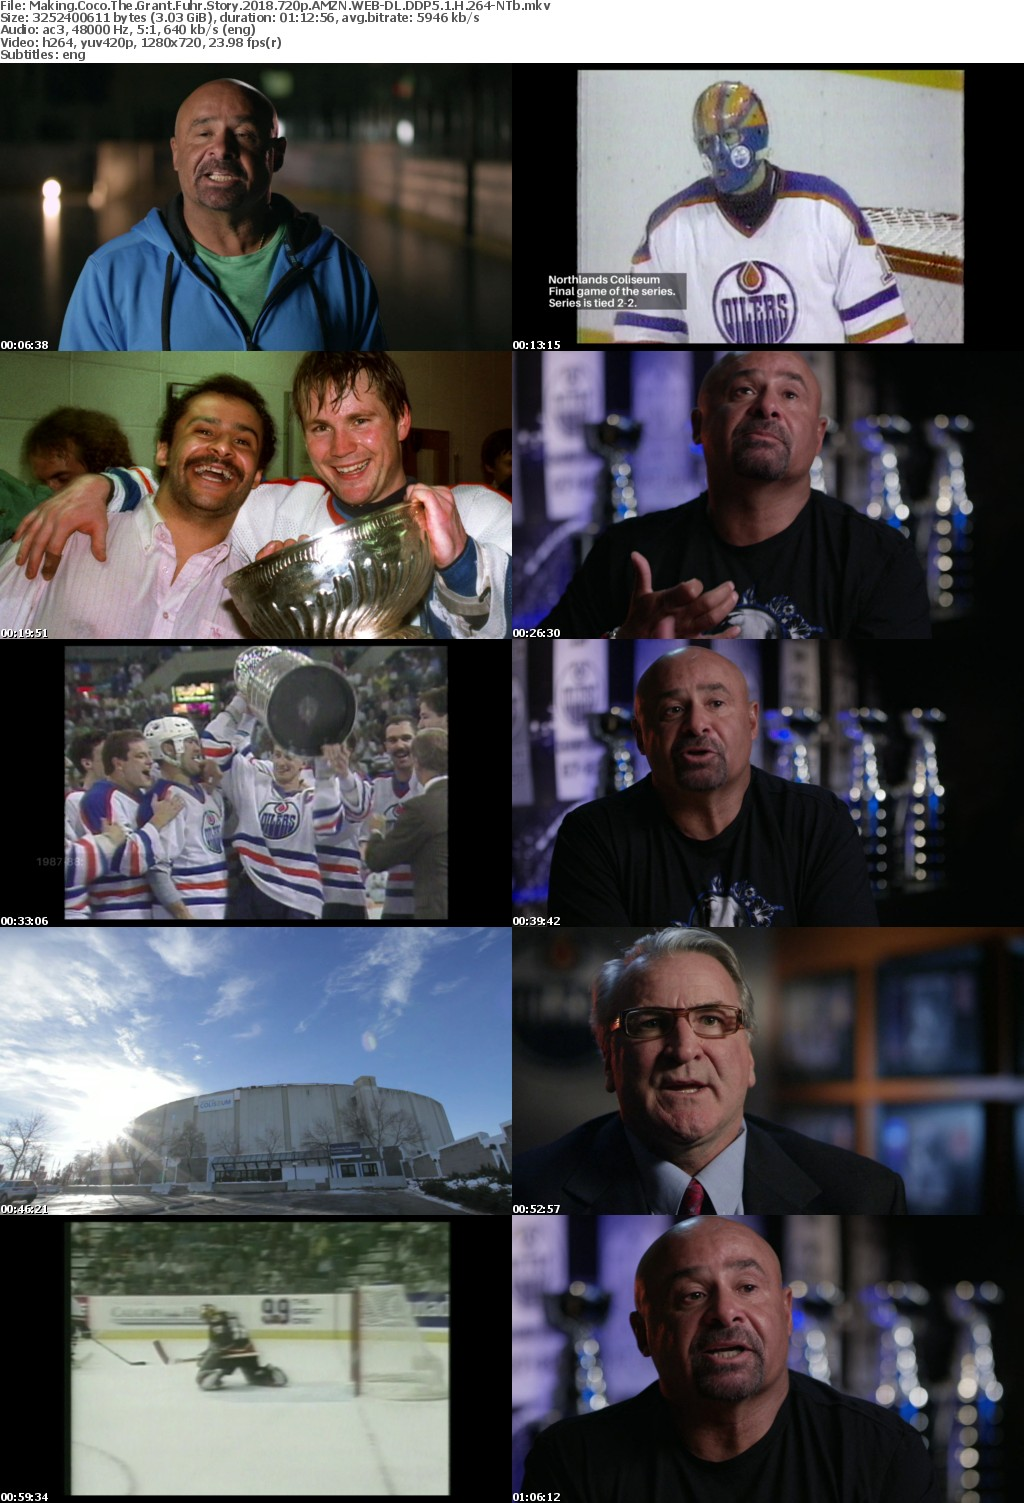 Making Coco The Grant Fuhr Story 2018 720p AMZN WEB-DL DDP5 1 H 264-NTb